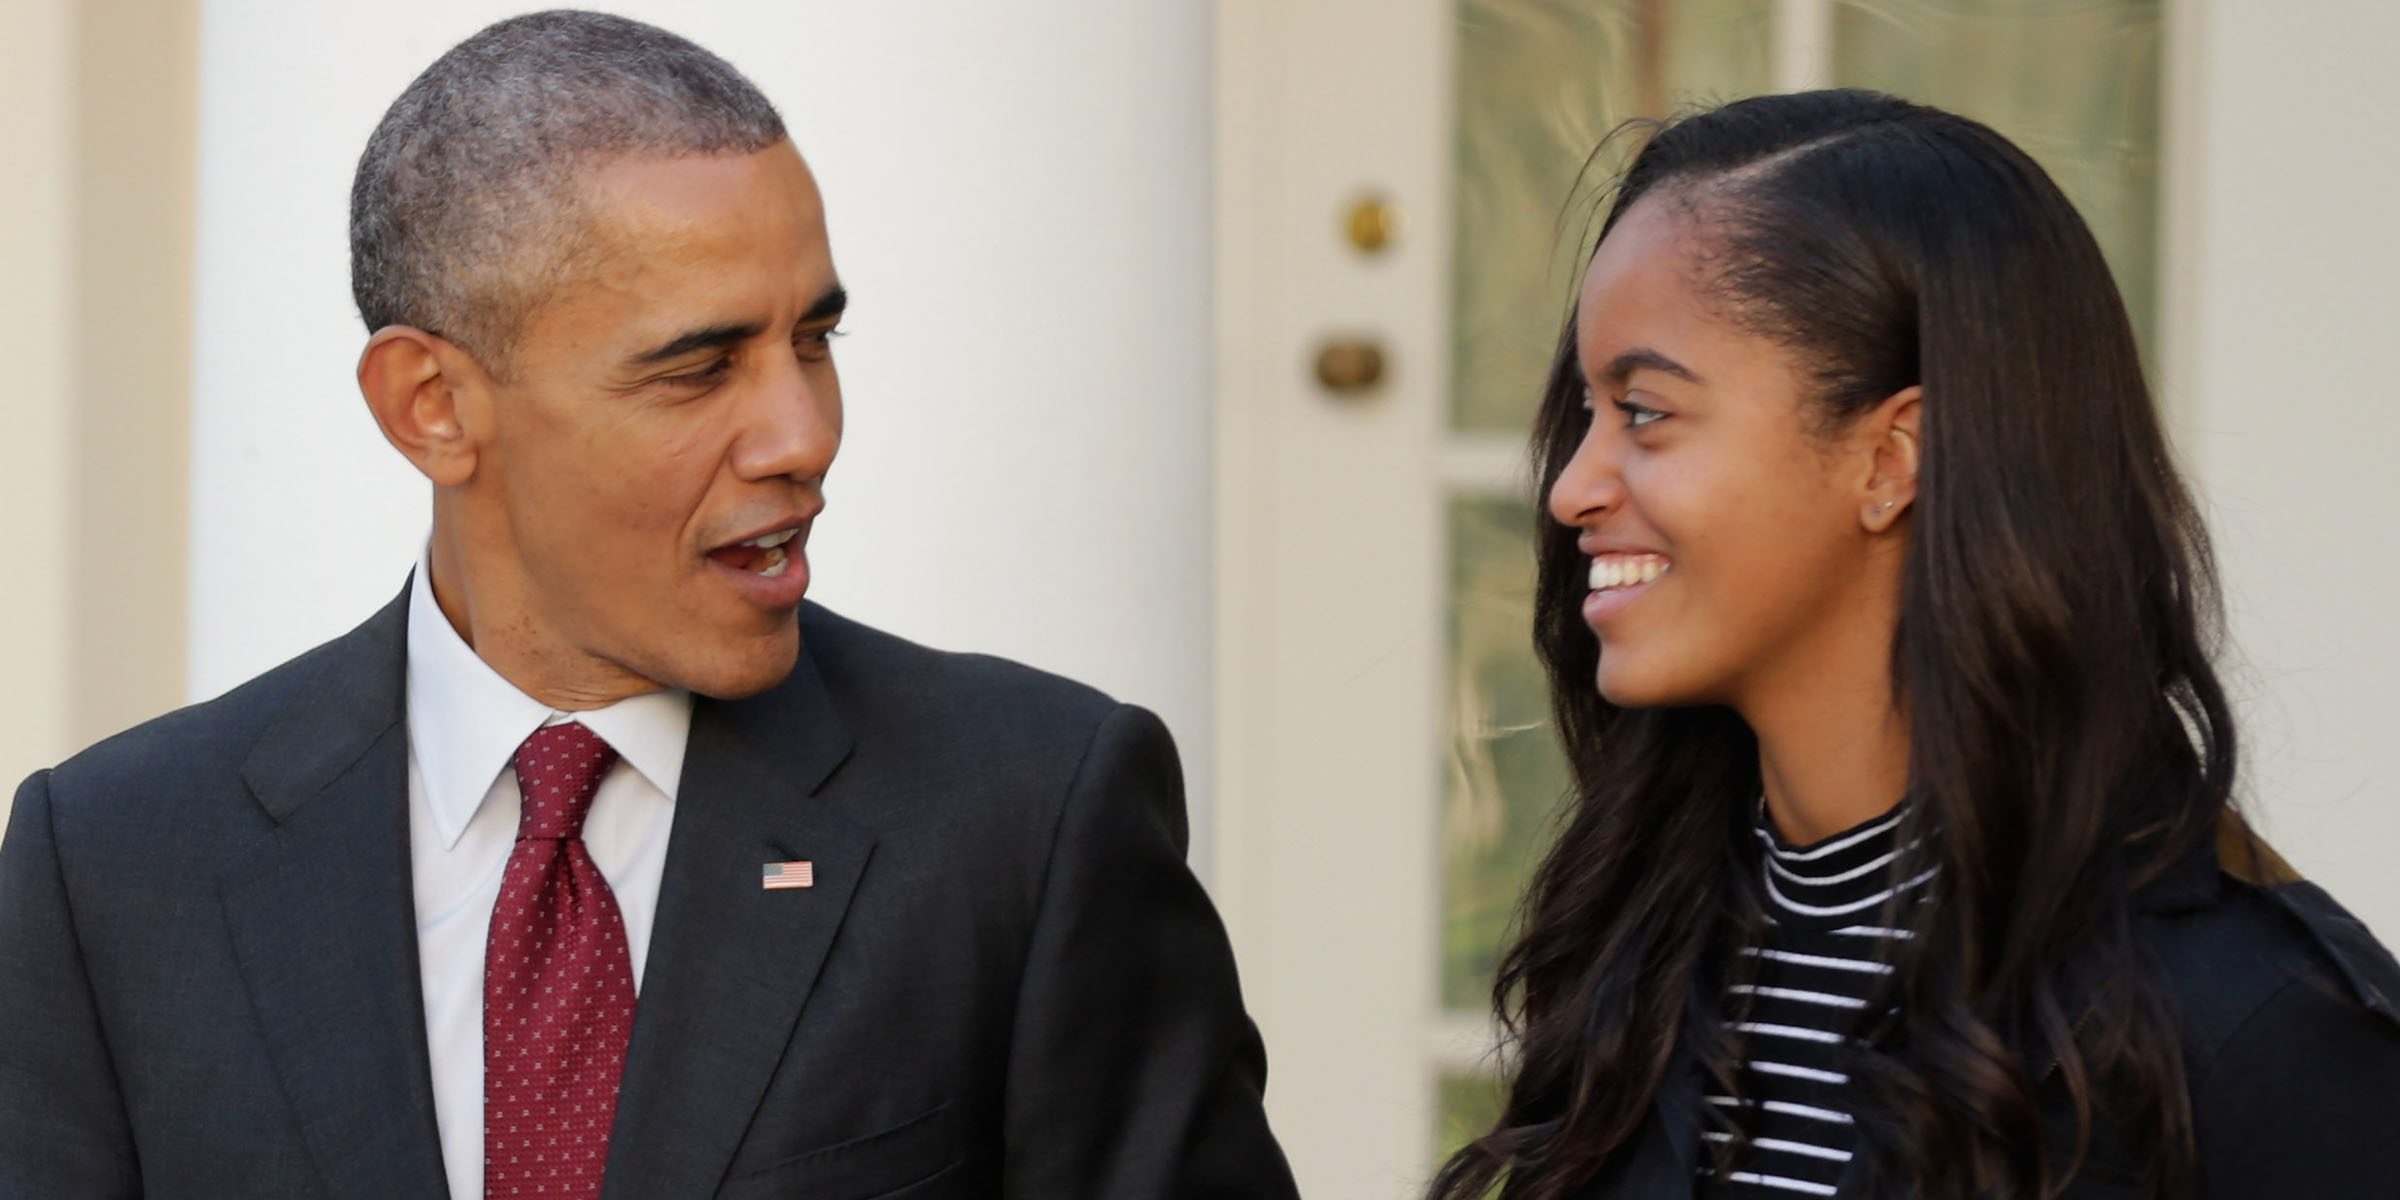 Malia Obama turns 21 on July 4th, gets birthday wishes from